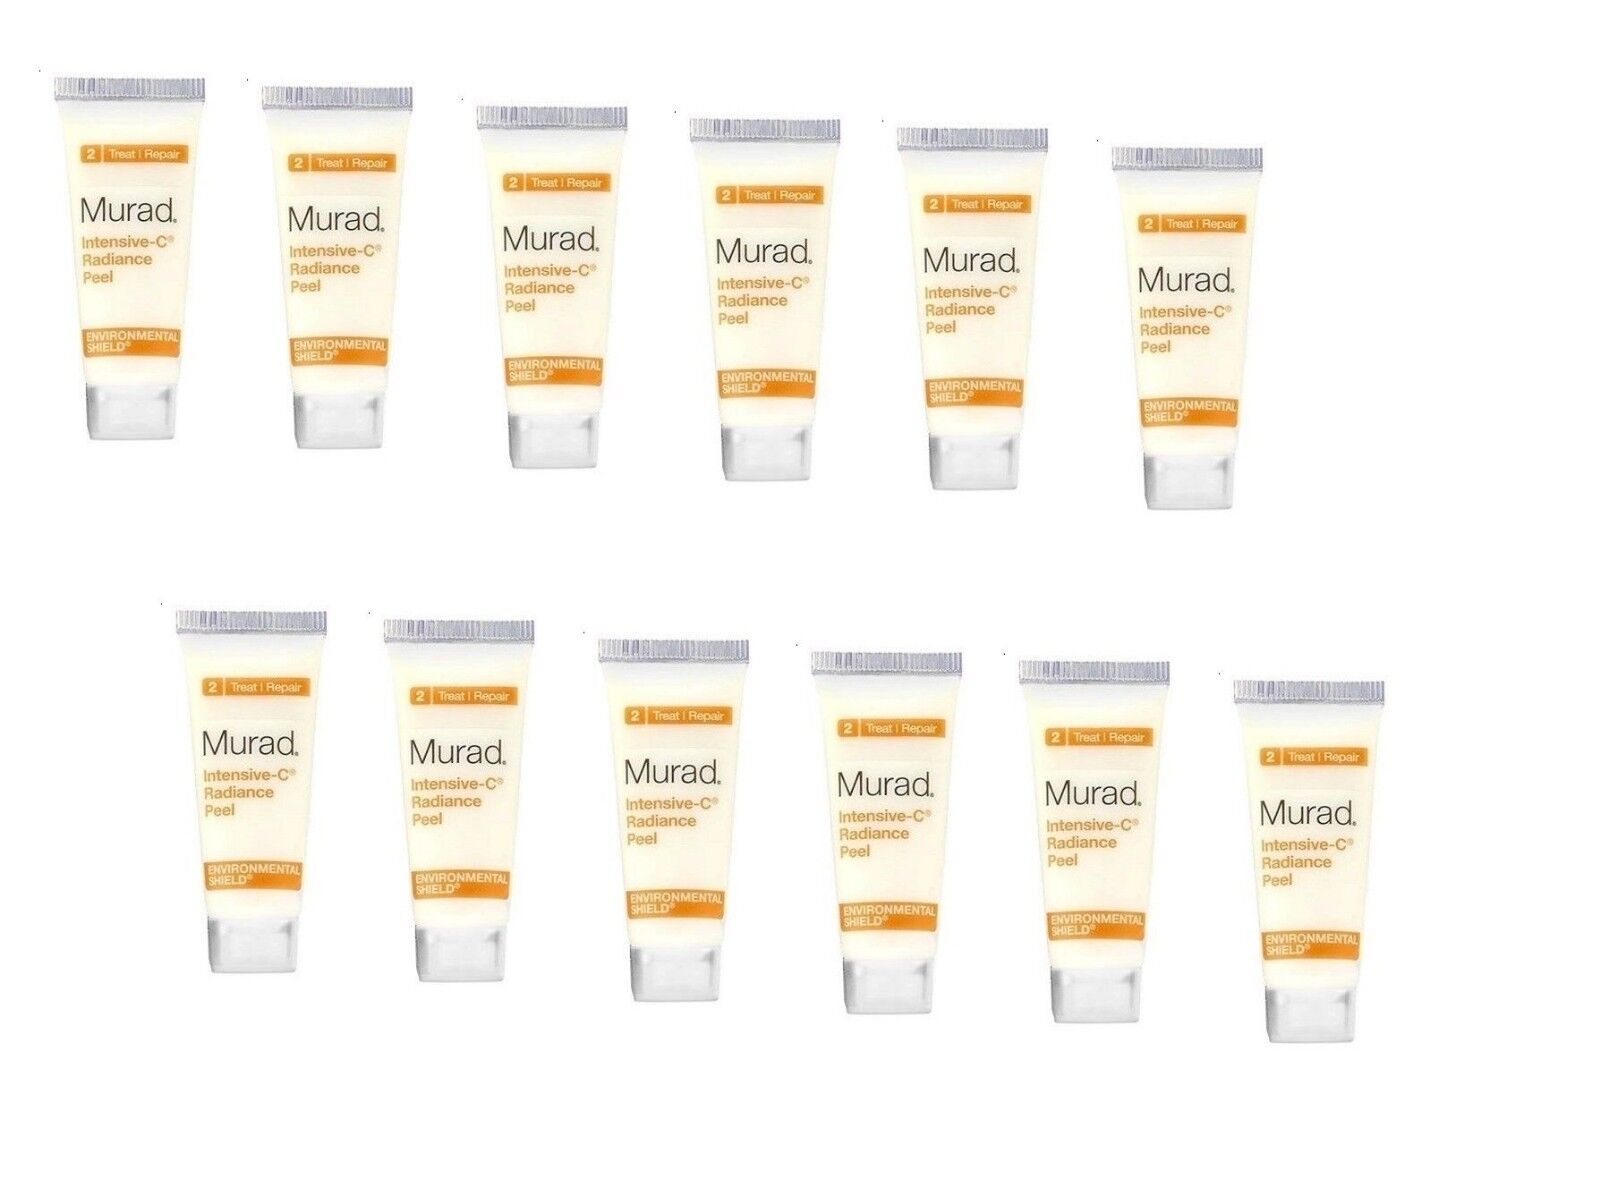 Travel Size Murad  Intensive-C Radiance Peel Set 12 Items 0.